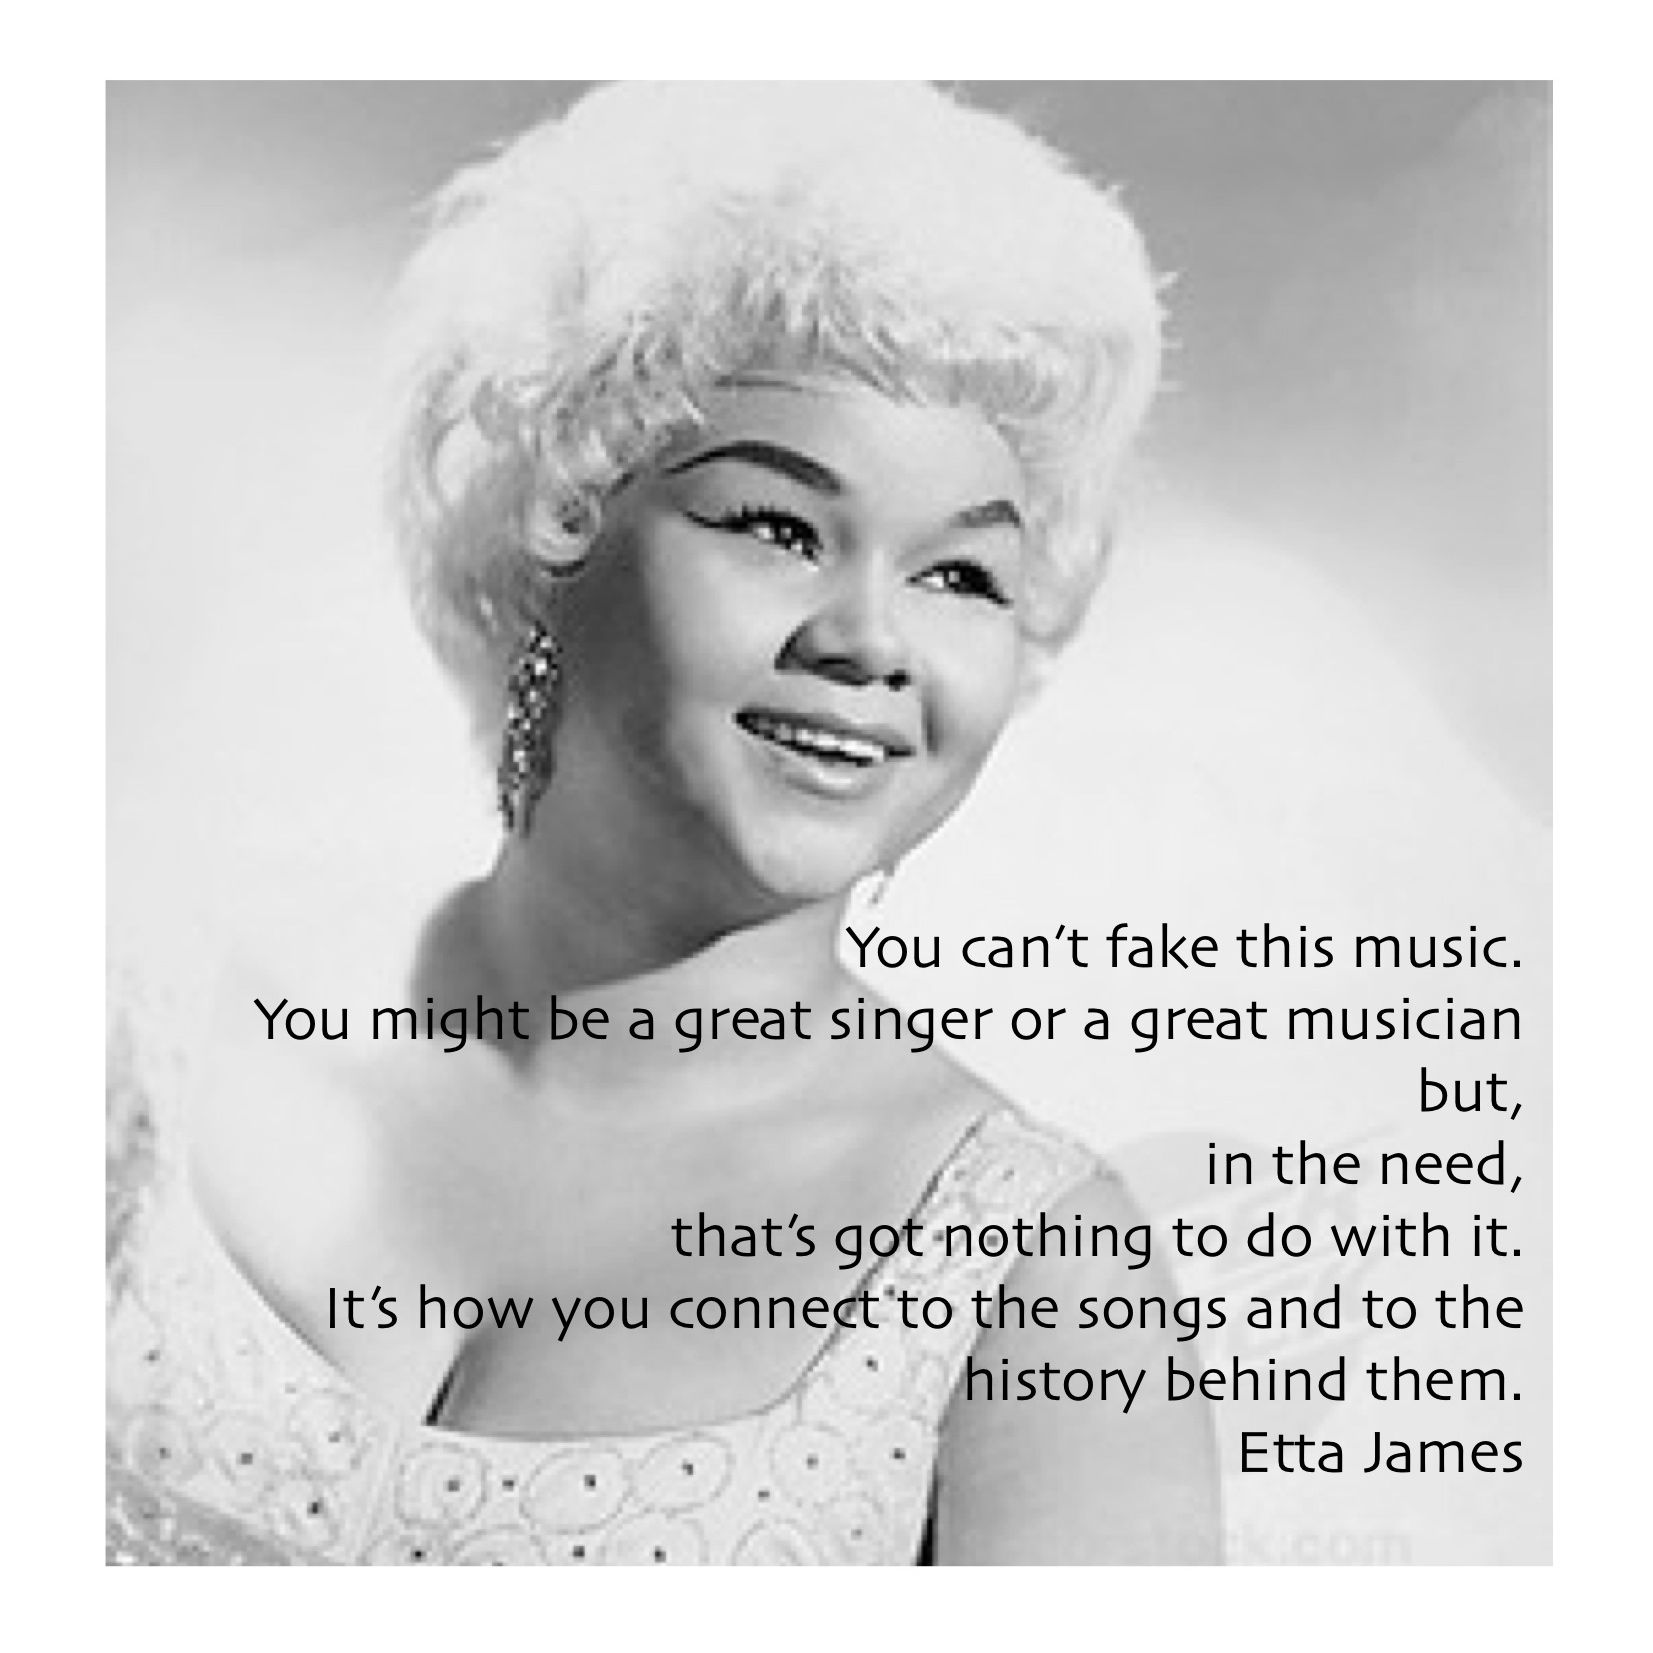 Miss Etta James Quote About Singing Pin Made By Vintage Soul Band MISSTRI Debora Hulskamp